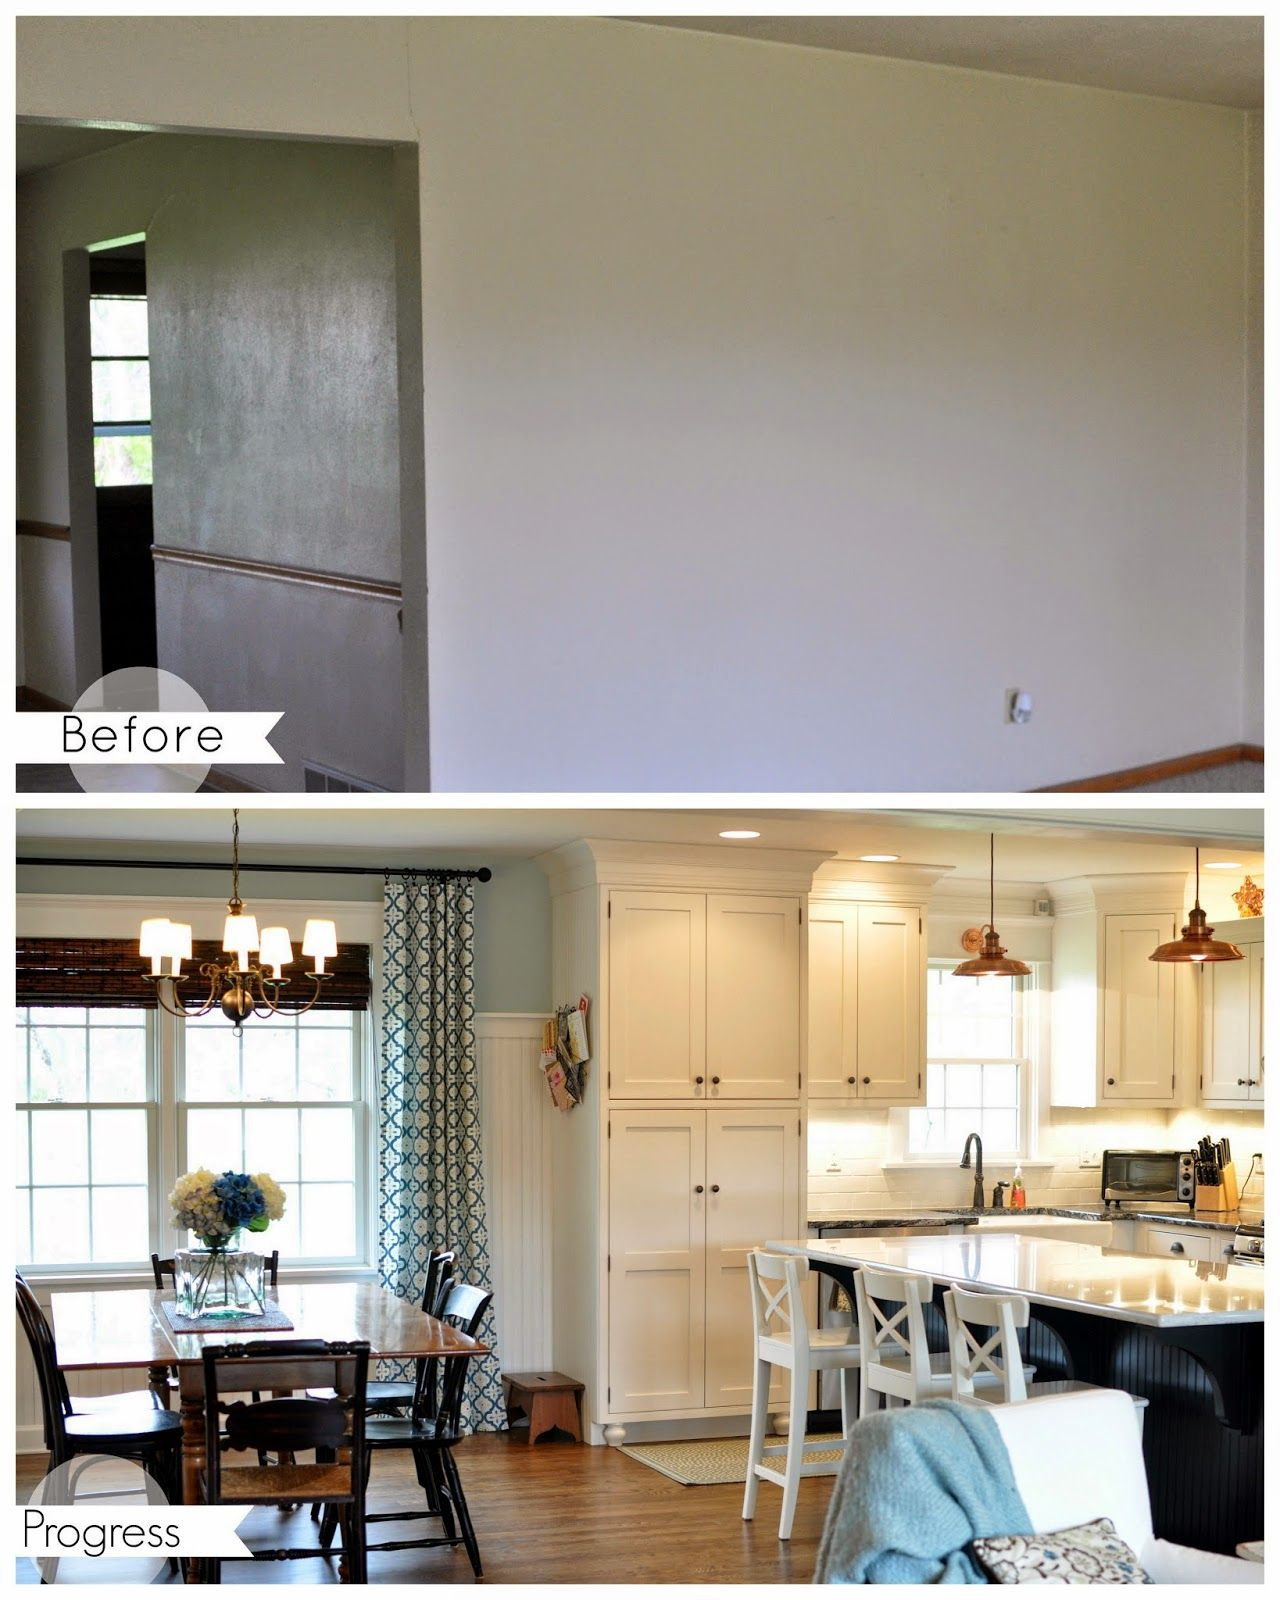 Creating An Open Kitchen And Dining Room: Opening Up A Kitchen / Dining Area (2) Wall Removal, Added